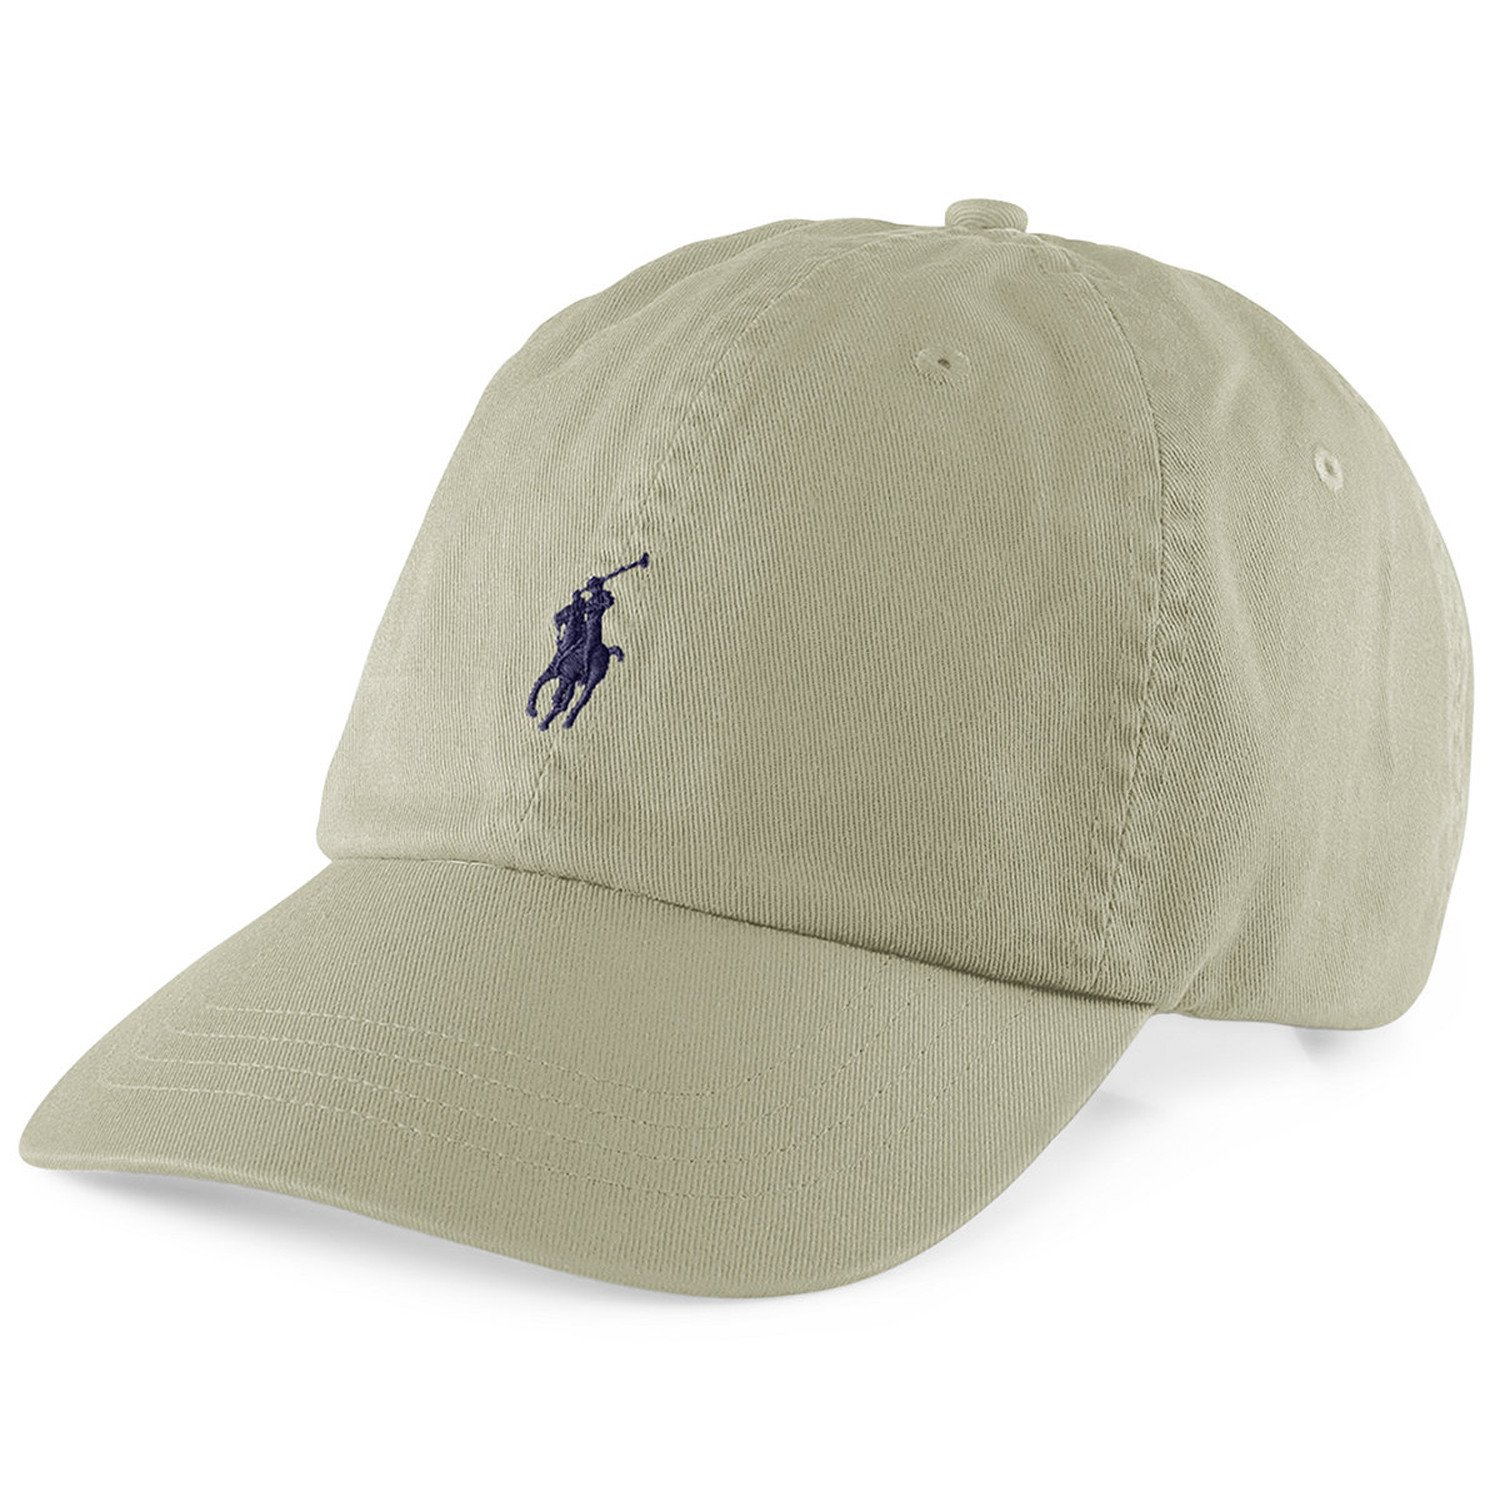 Polo Fashion Signature Pony Adjustable Beige Cotton Hat at Amazon Men s  Clothing store  e6a22bf4d31